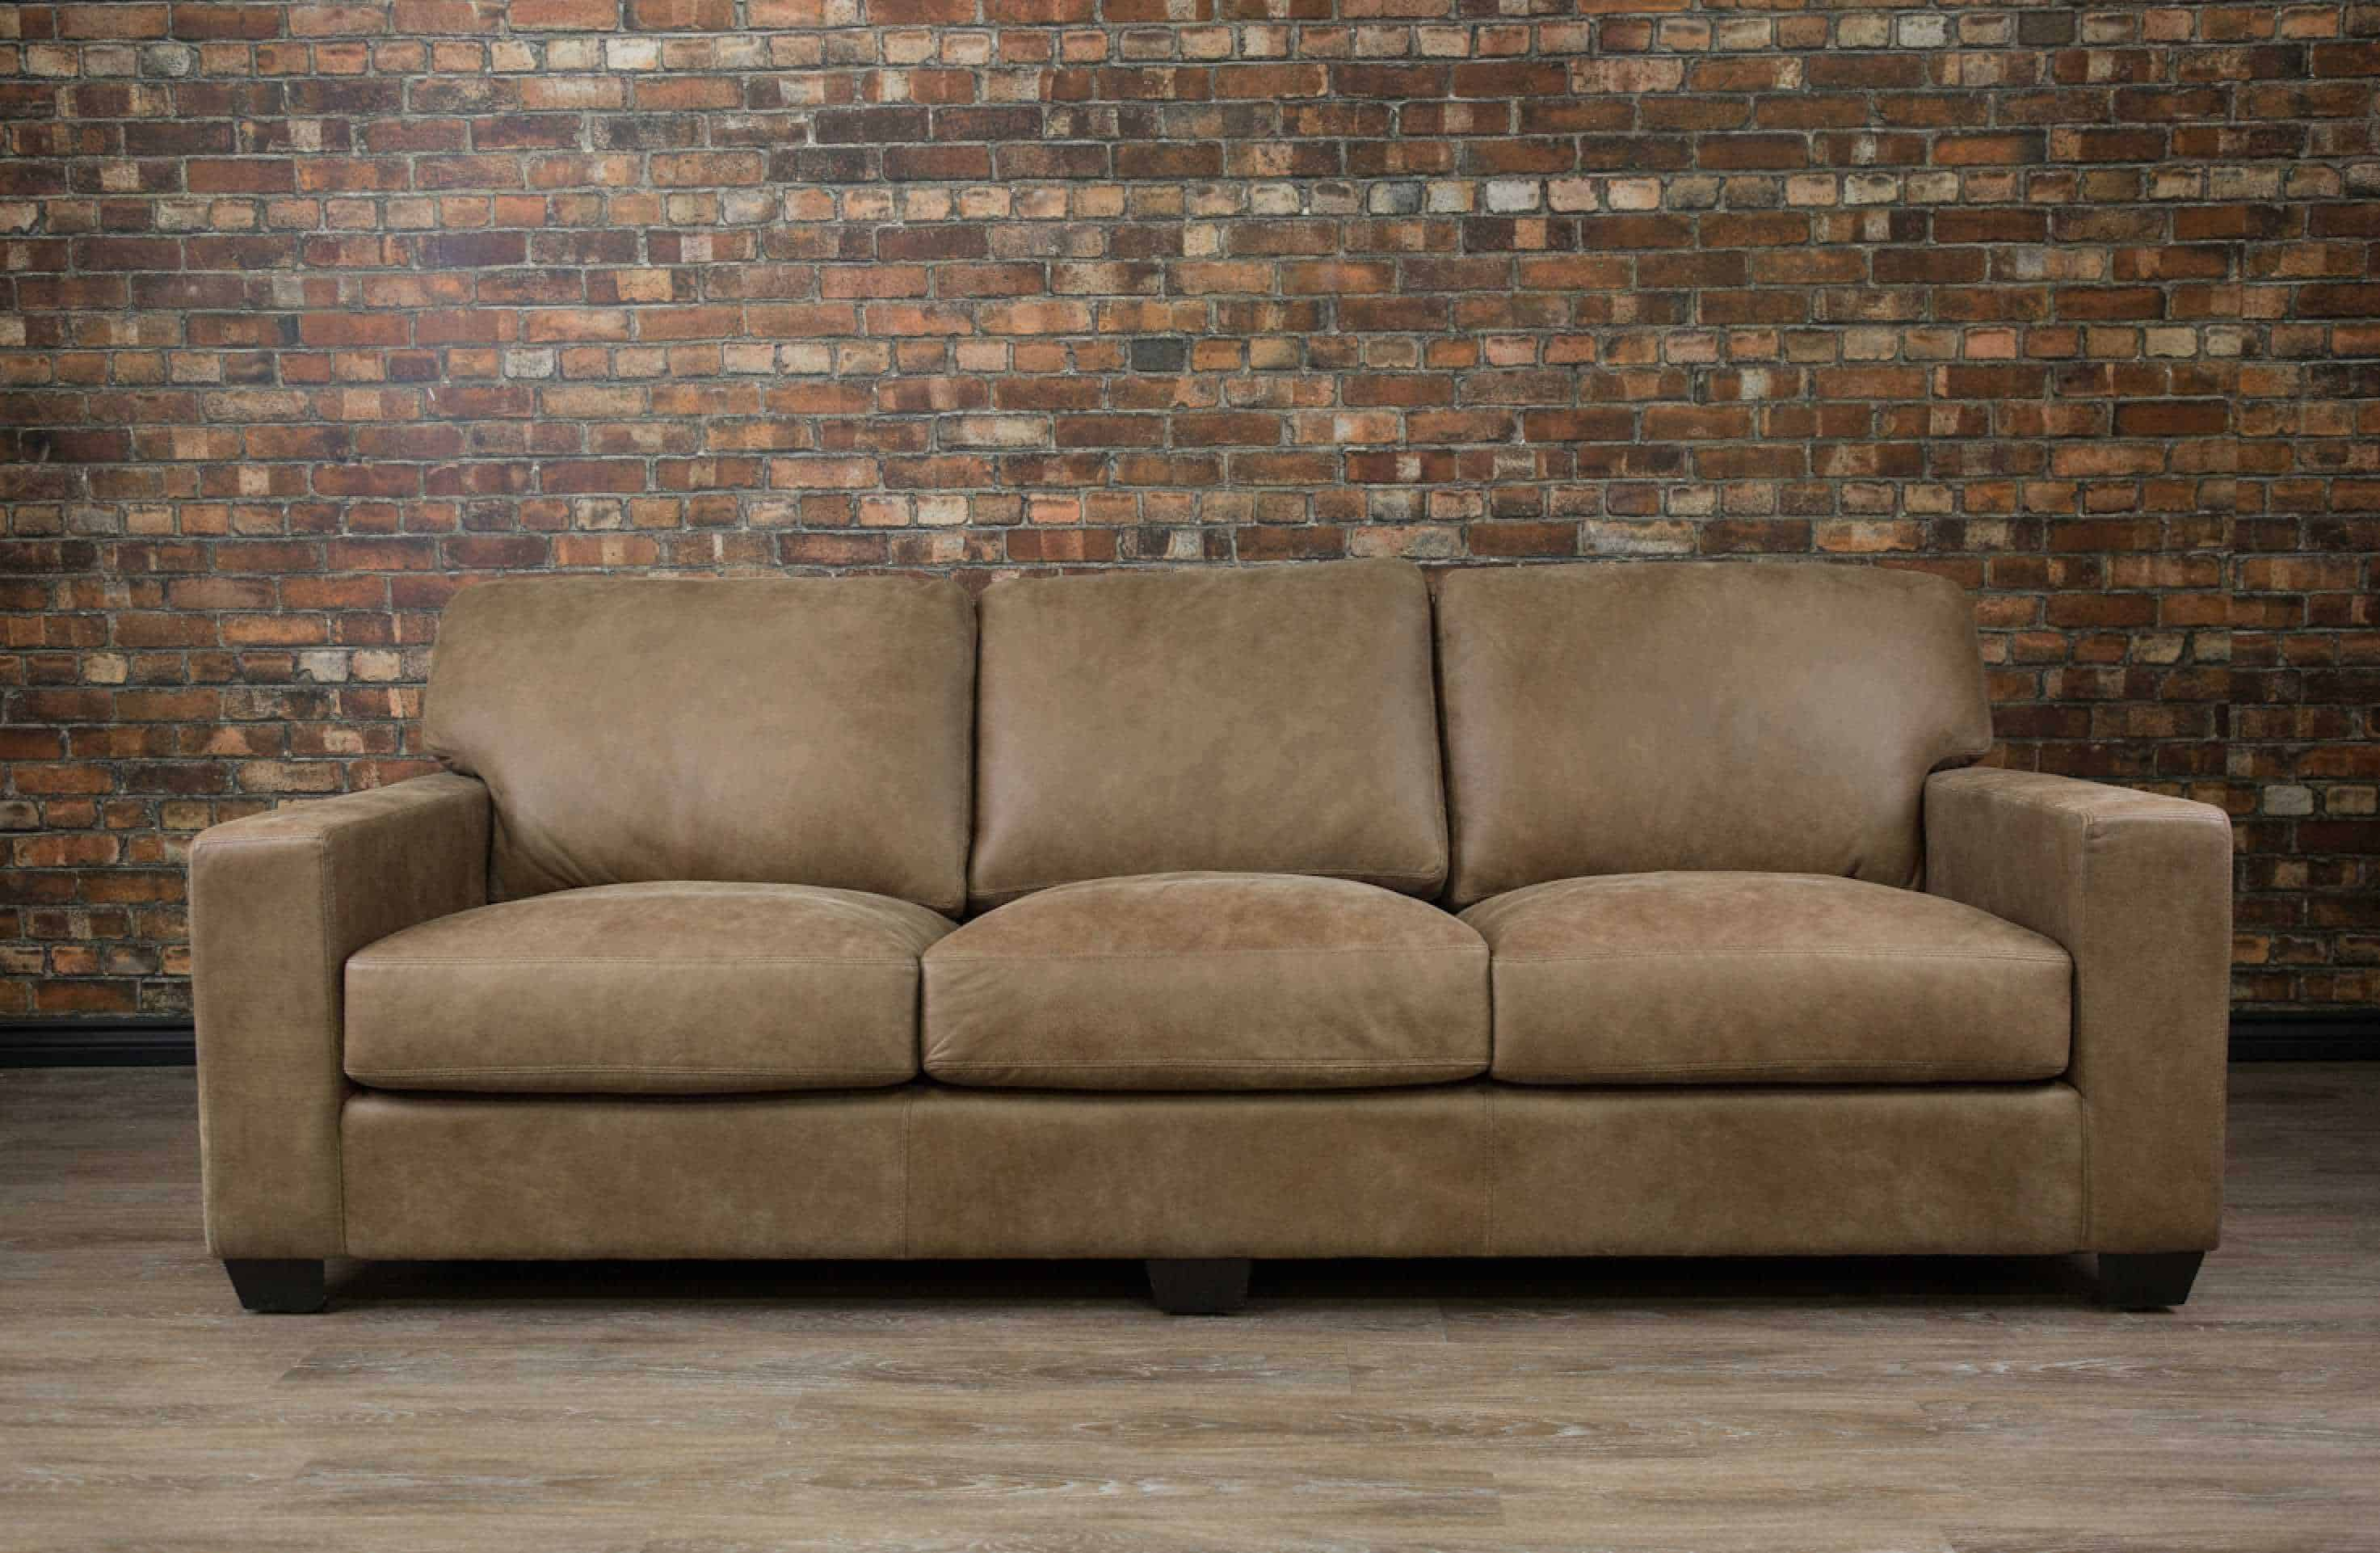 Canada S Boss Leather Furniture Canadian Made Leather Sofa